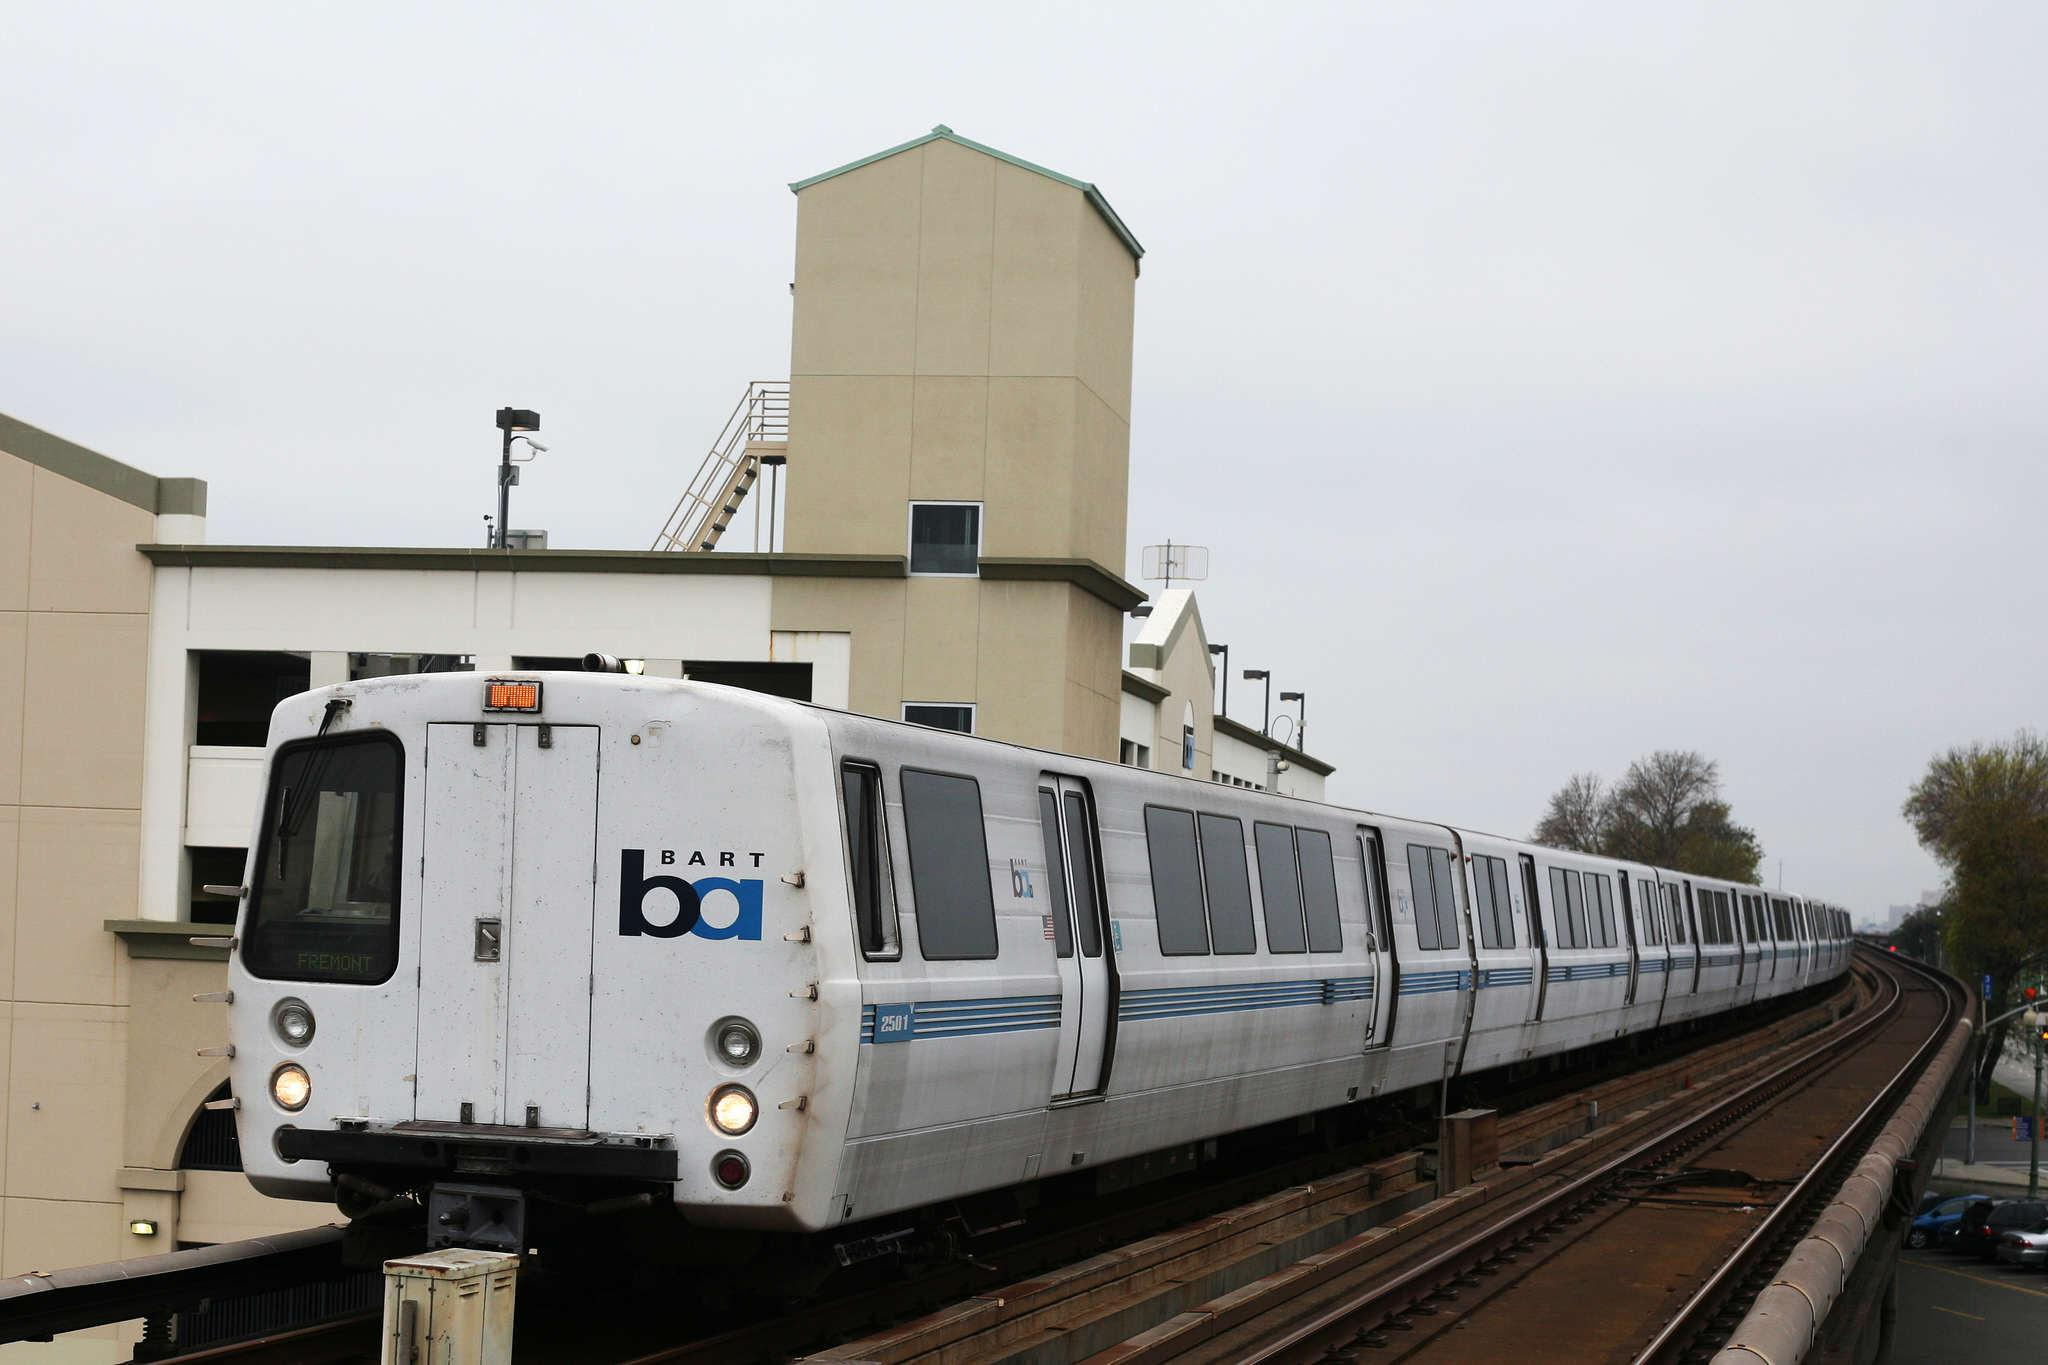 A Fremont bound bart train arrives at Fruitvale station in Oakland Tuesday, Feb. 17.  (Daniel Porter / Xpress)